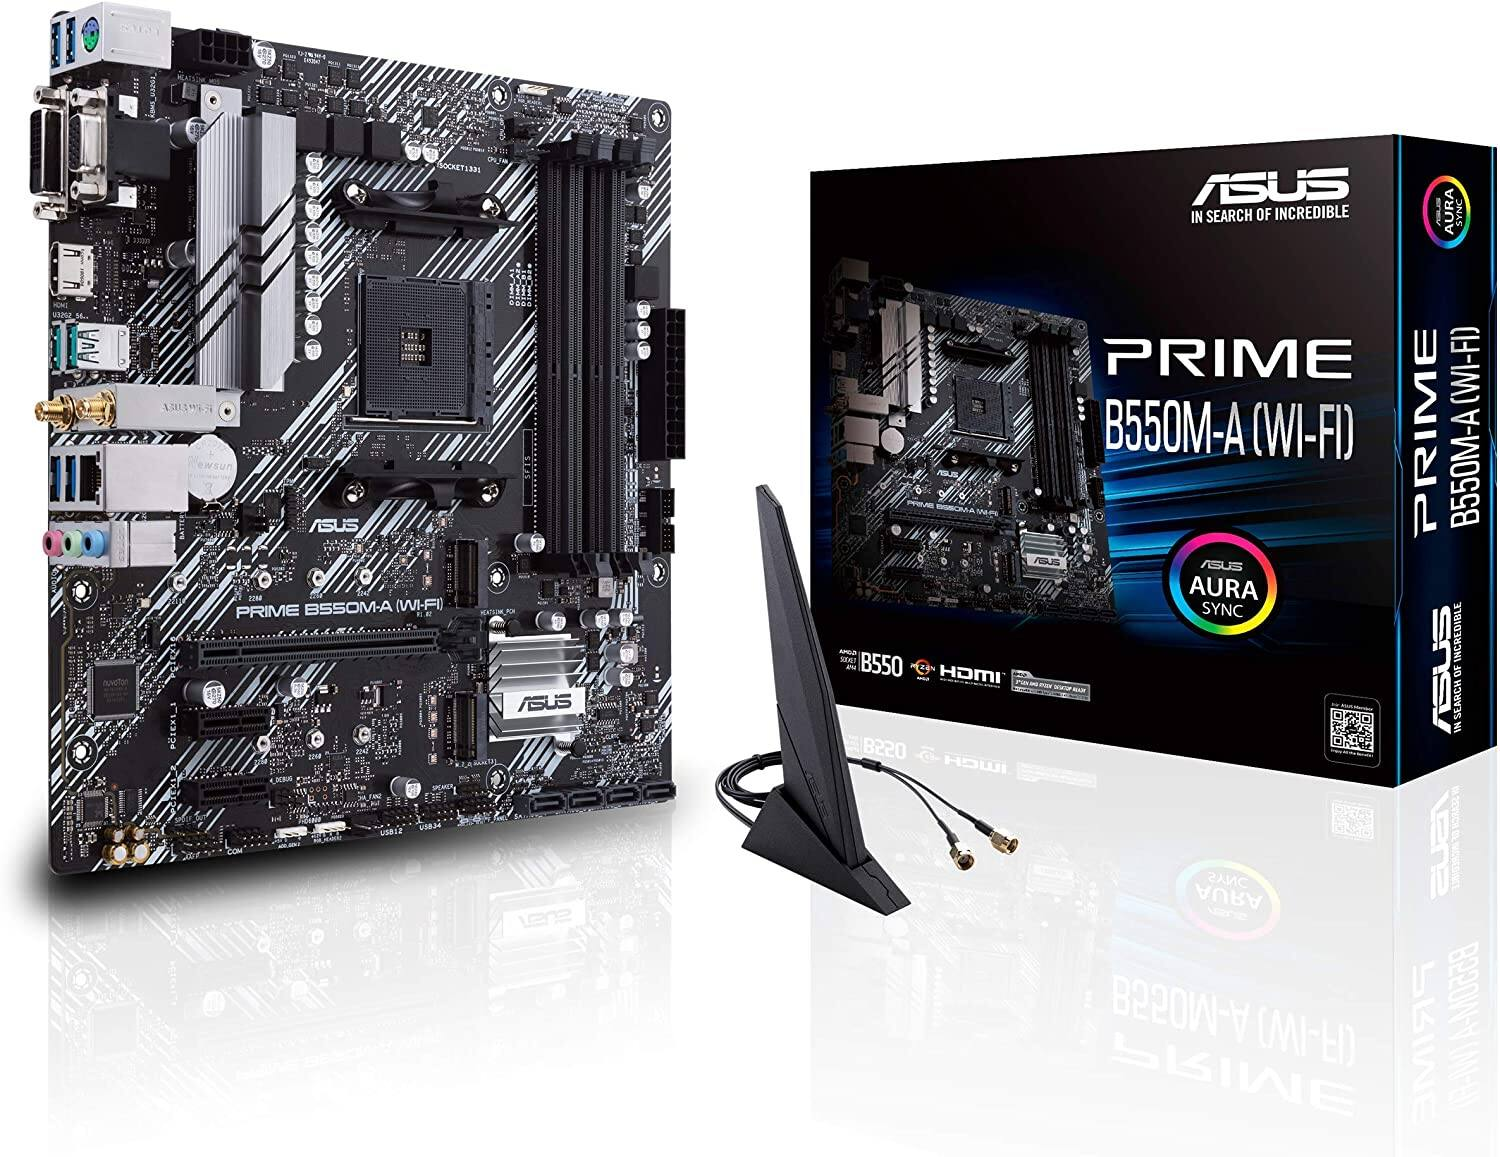 ASUS Prime B550M-A WiFi AMD AM4 Ryzen Micro ATX Motherboard Pre Order Available June 16 $150